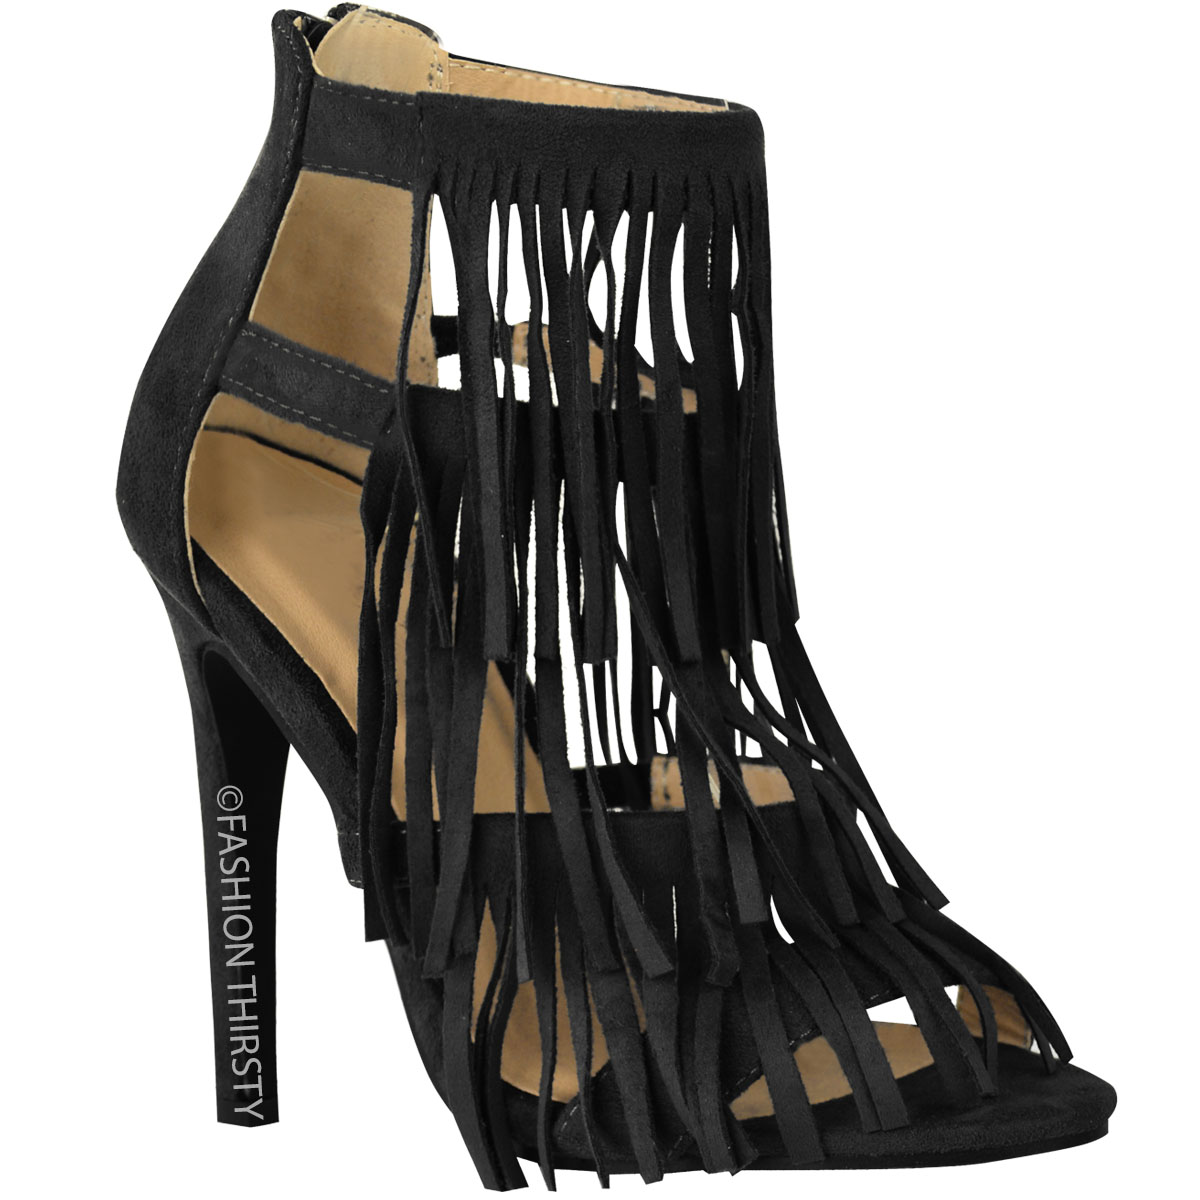 WOMENS LADIES FRINGE HIGH HEEL PARTY SANDALS TASSEL STRAPPY STILETTO SHOES SIZE